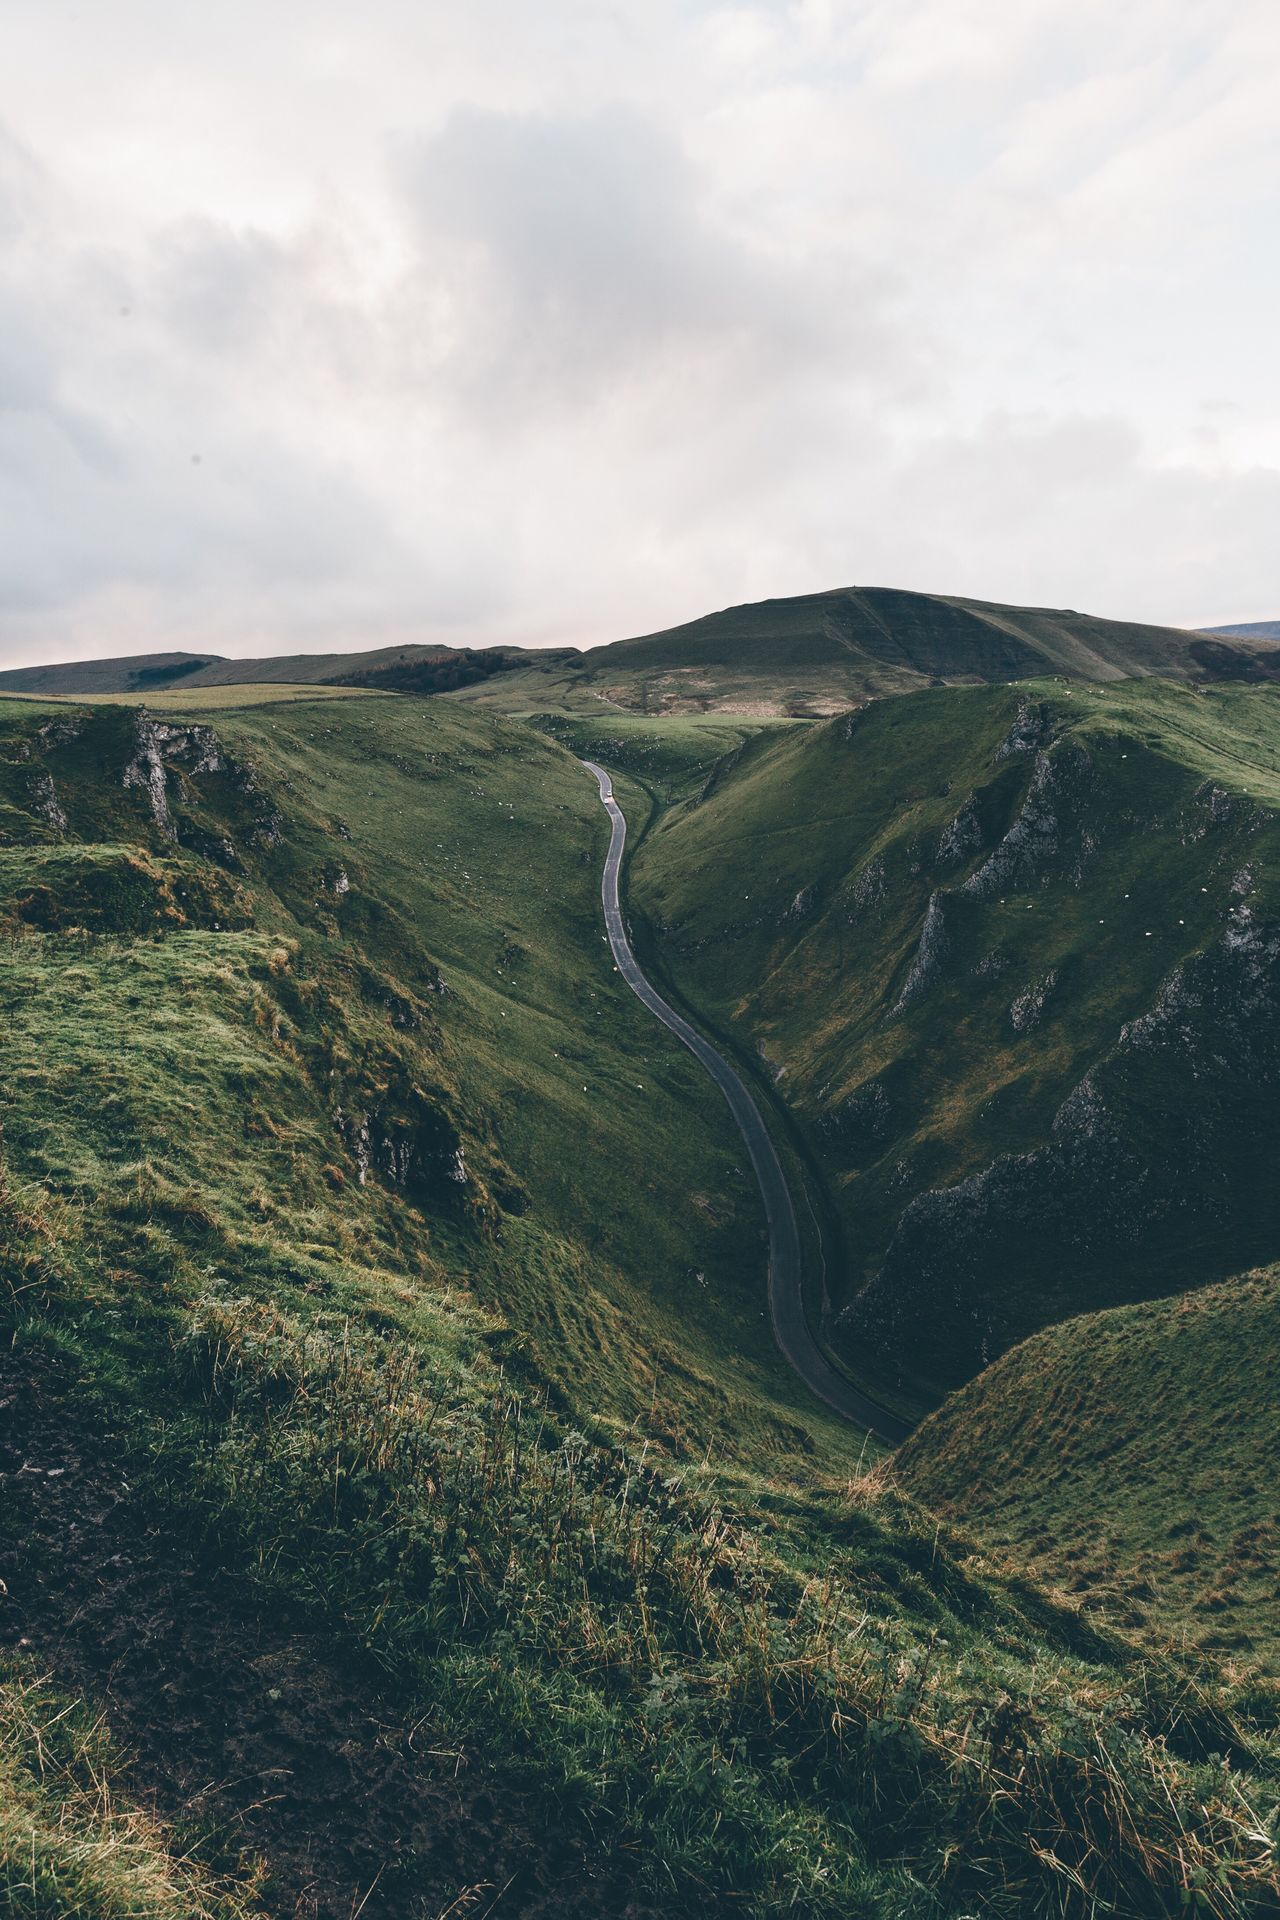 One of my favourite places to photograph is Winnats Pass in the Peak District. It's quite hidden away but it offers some amazing g views! Beauty In Nature Nature Tranquil Scene Peak District  Landscape Landscape_photography VSCO England EyeEm Best Shots EyeEm Nature Lover Instagood